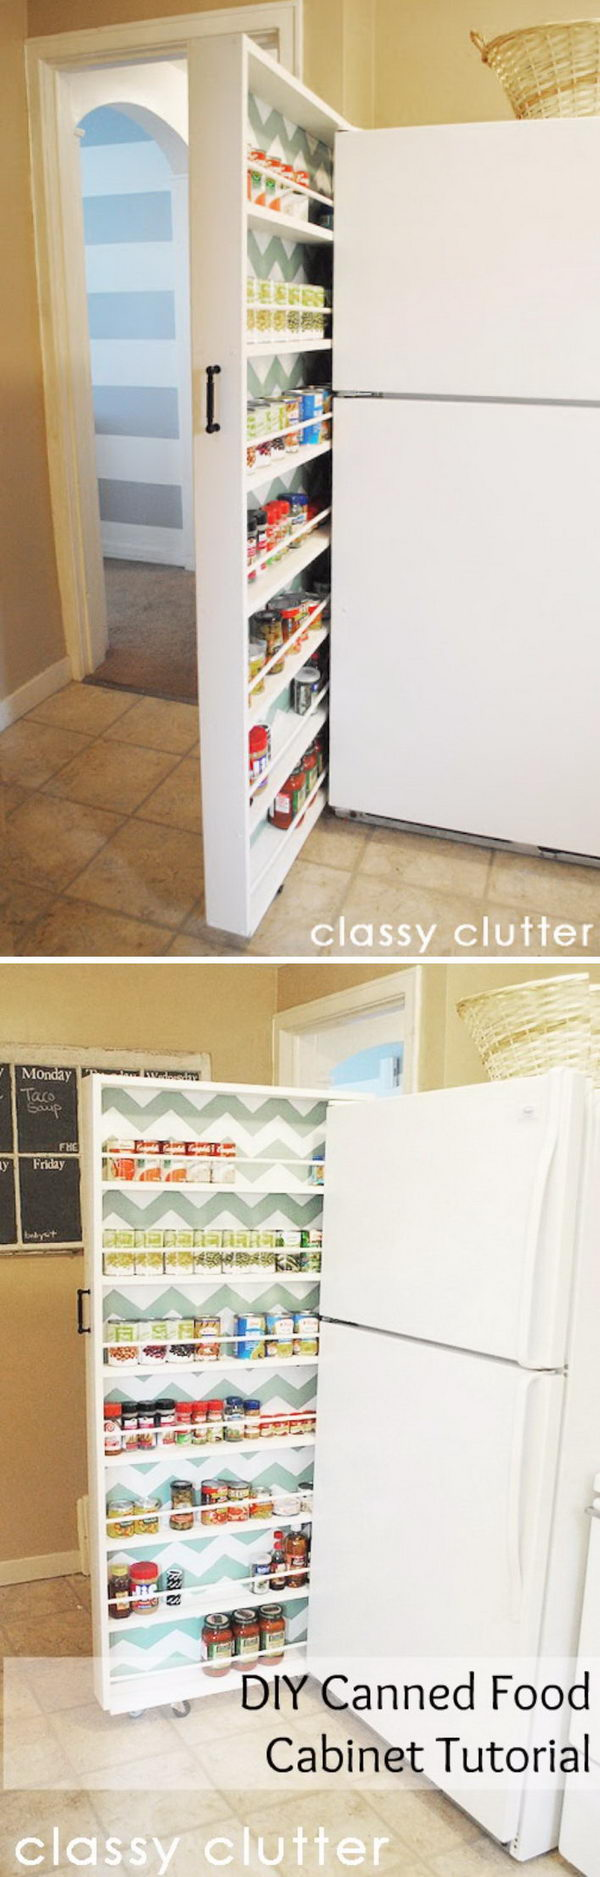 20+ Creative Kitchen Organization and DIY Storage Ideas - Hative